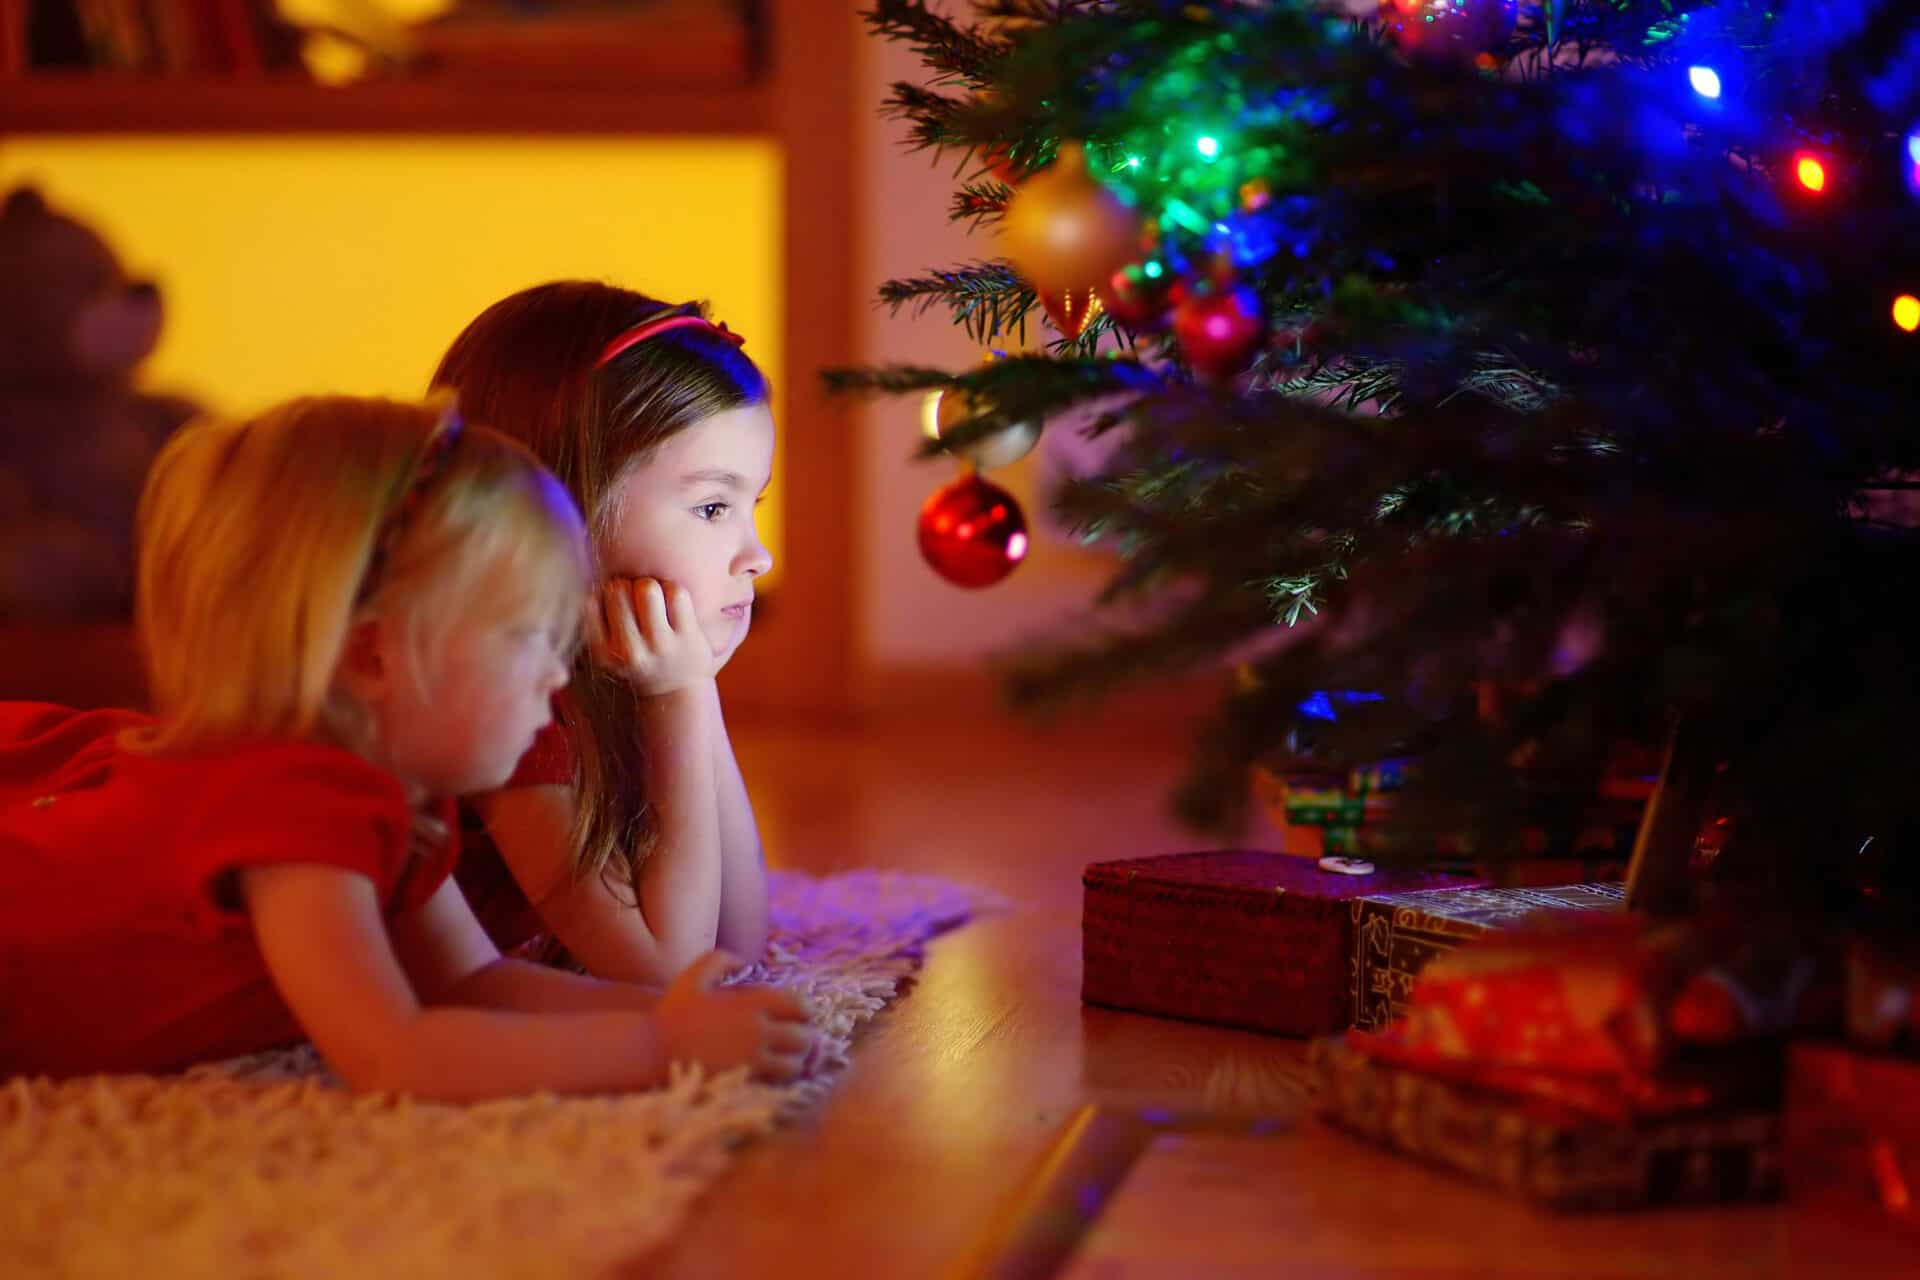 How to Keep Presents from Overwhelming Christmas | Alternatives to Minimalist Christmas Gift Ideas